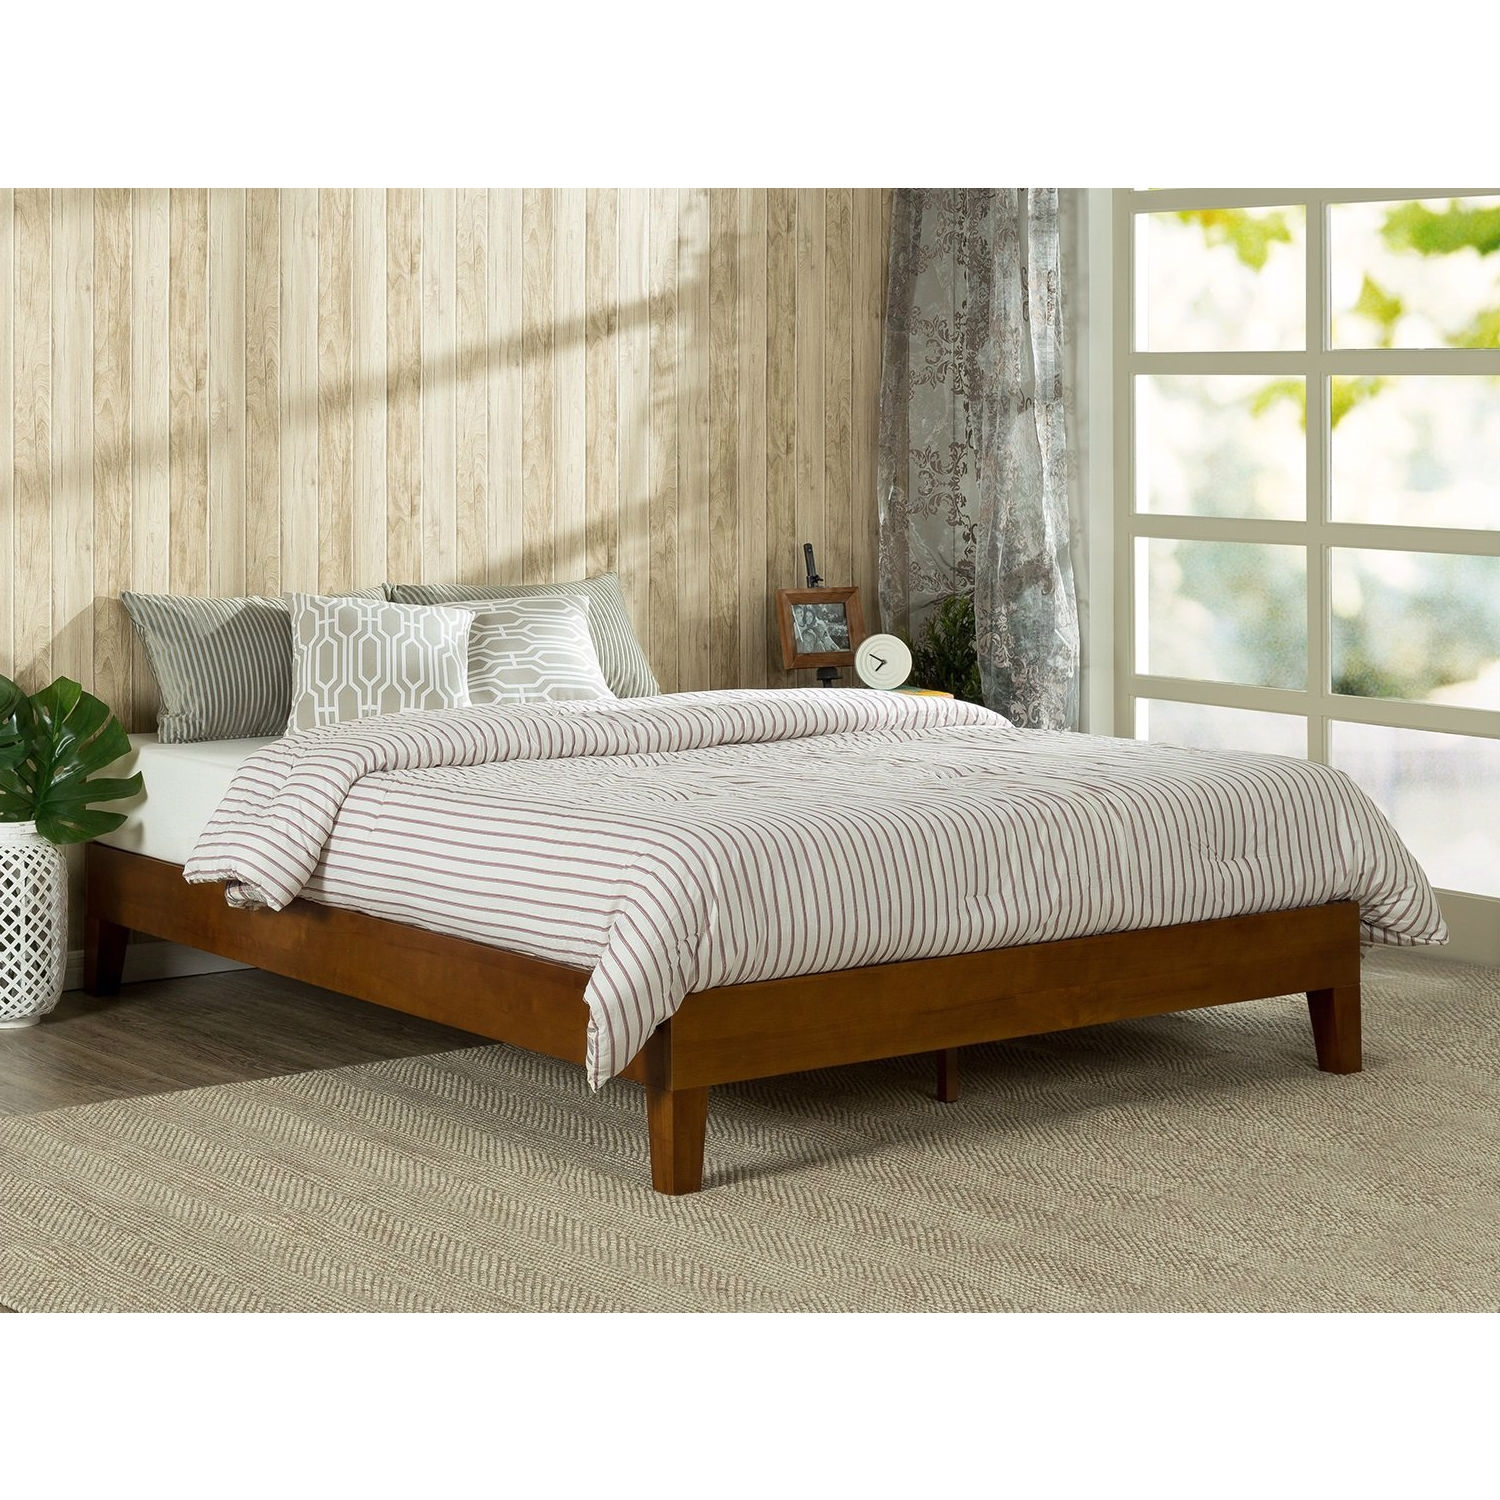 retail price 34900 - Solid Wood Platform Bed Frame King